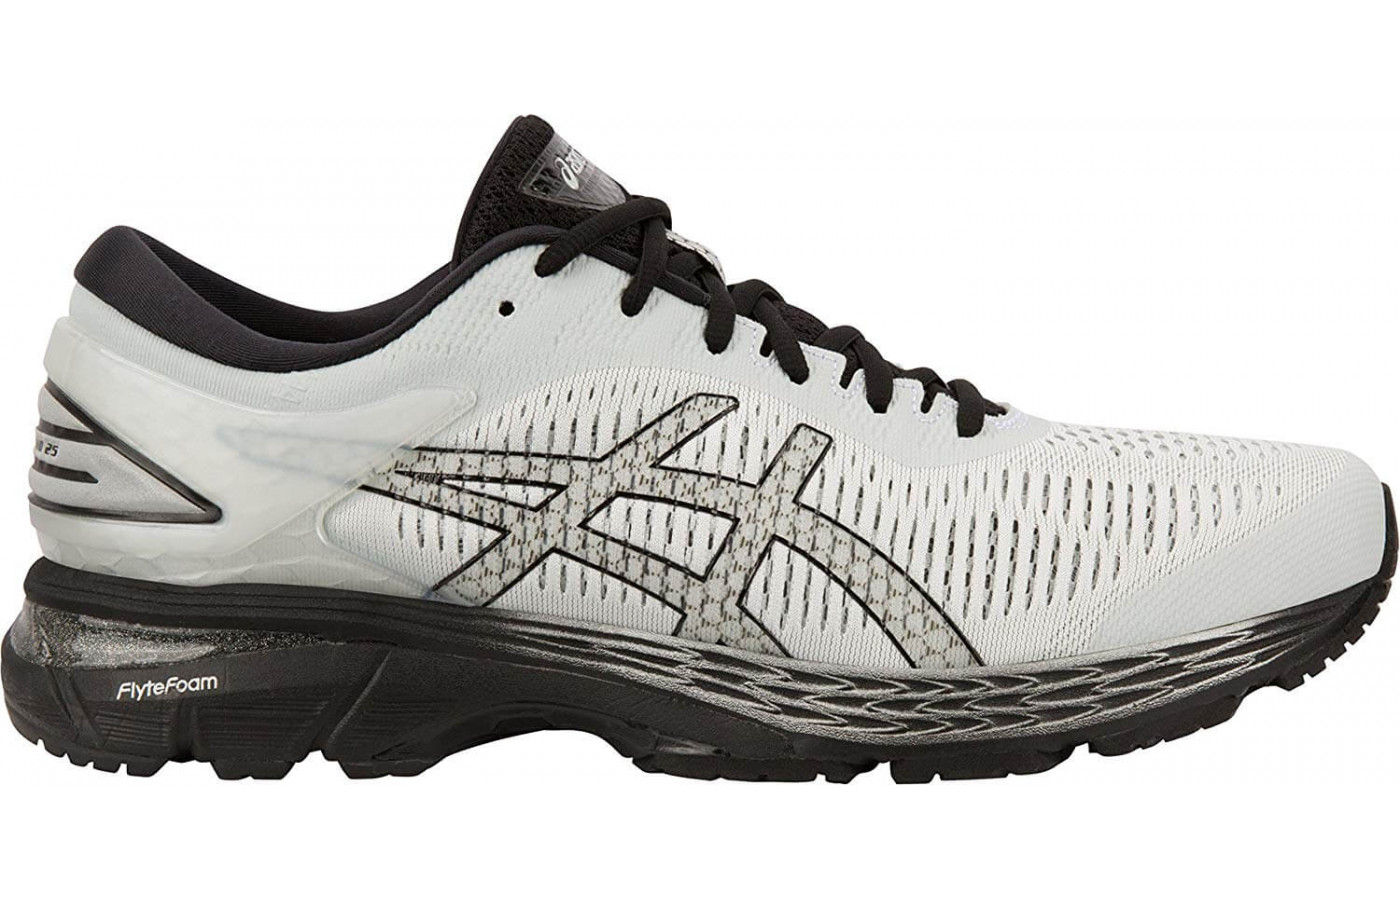 The lateral side of the Asics Gel Kayano 25.